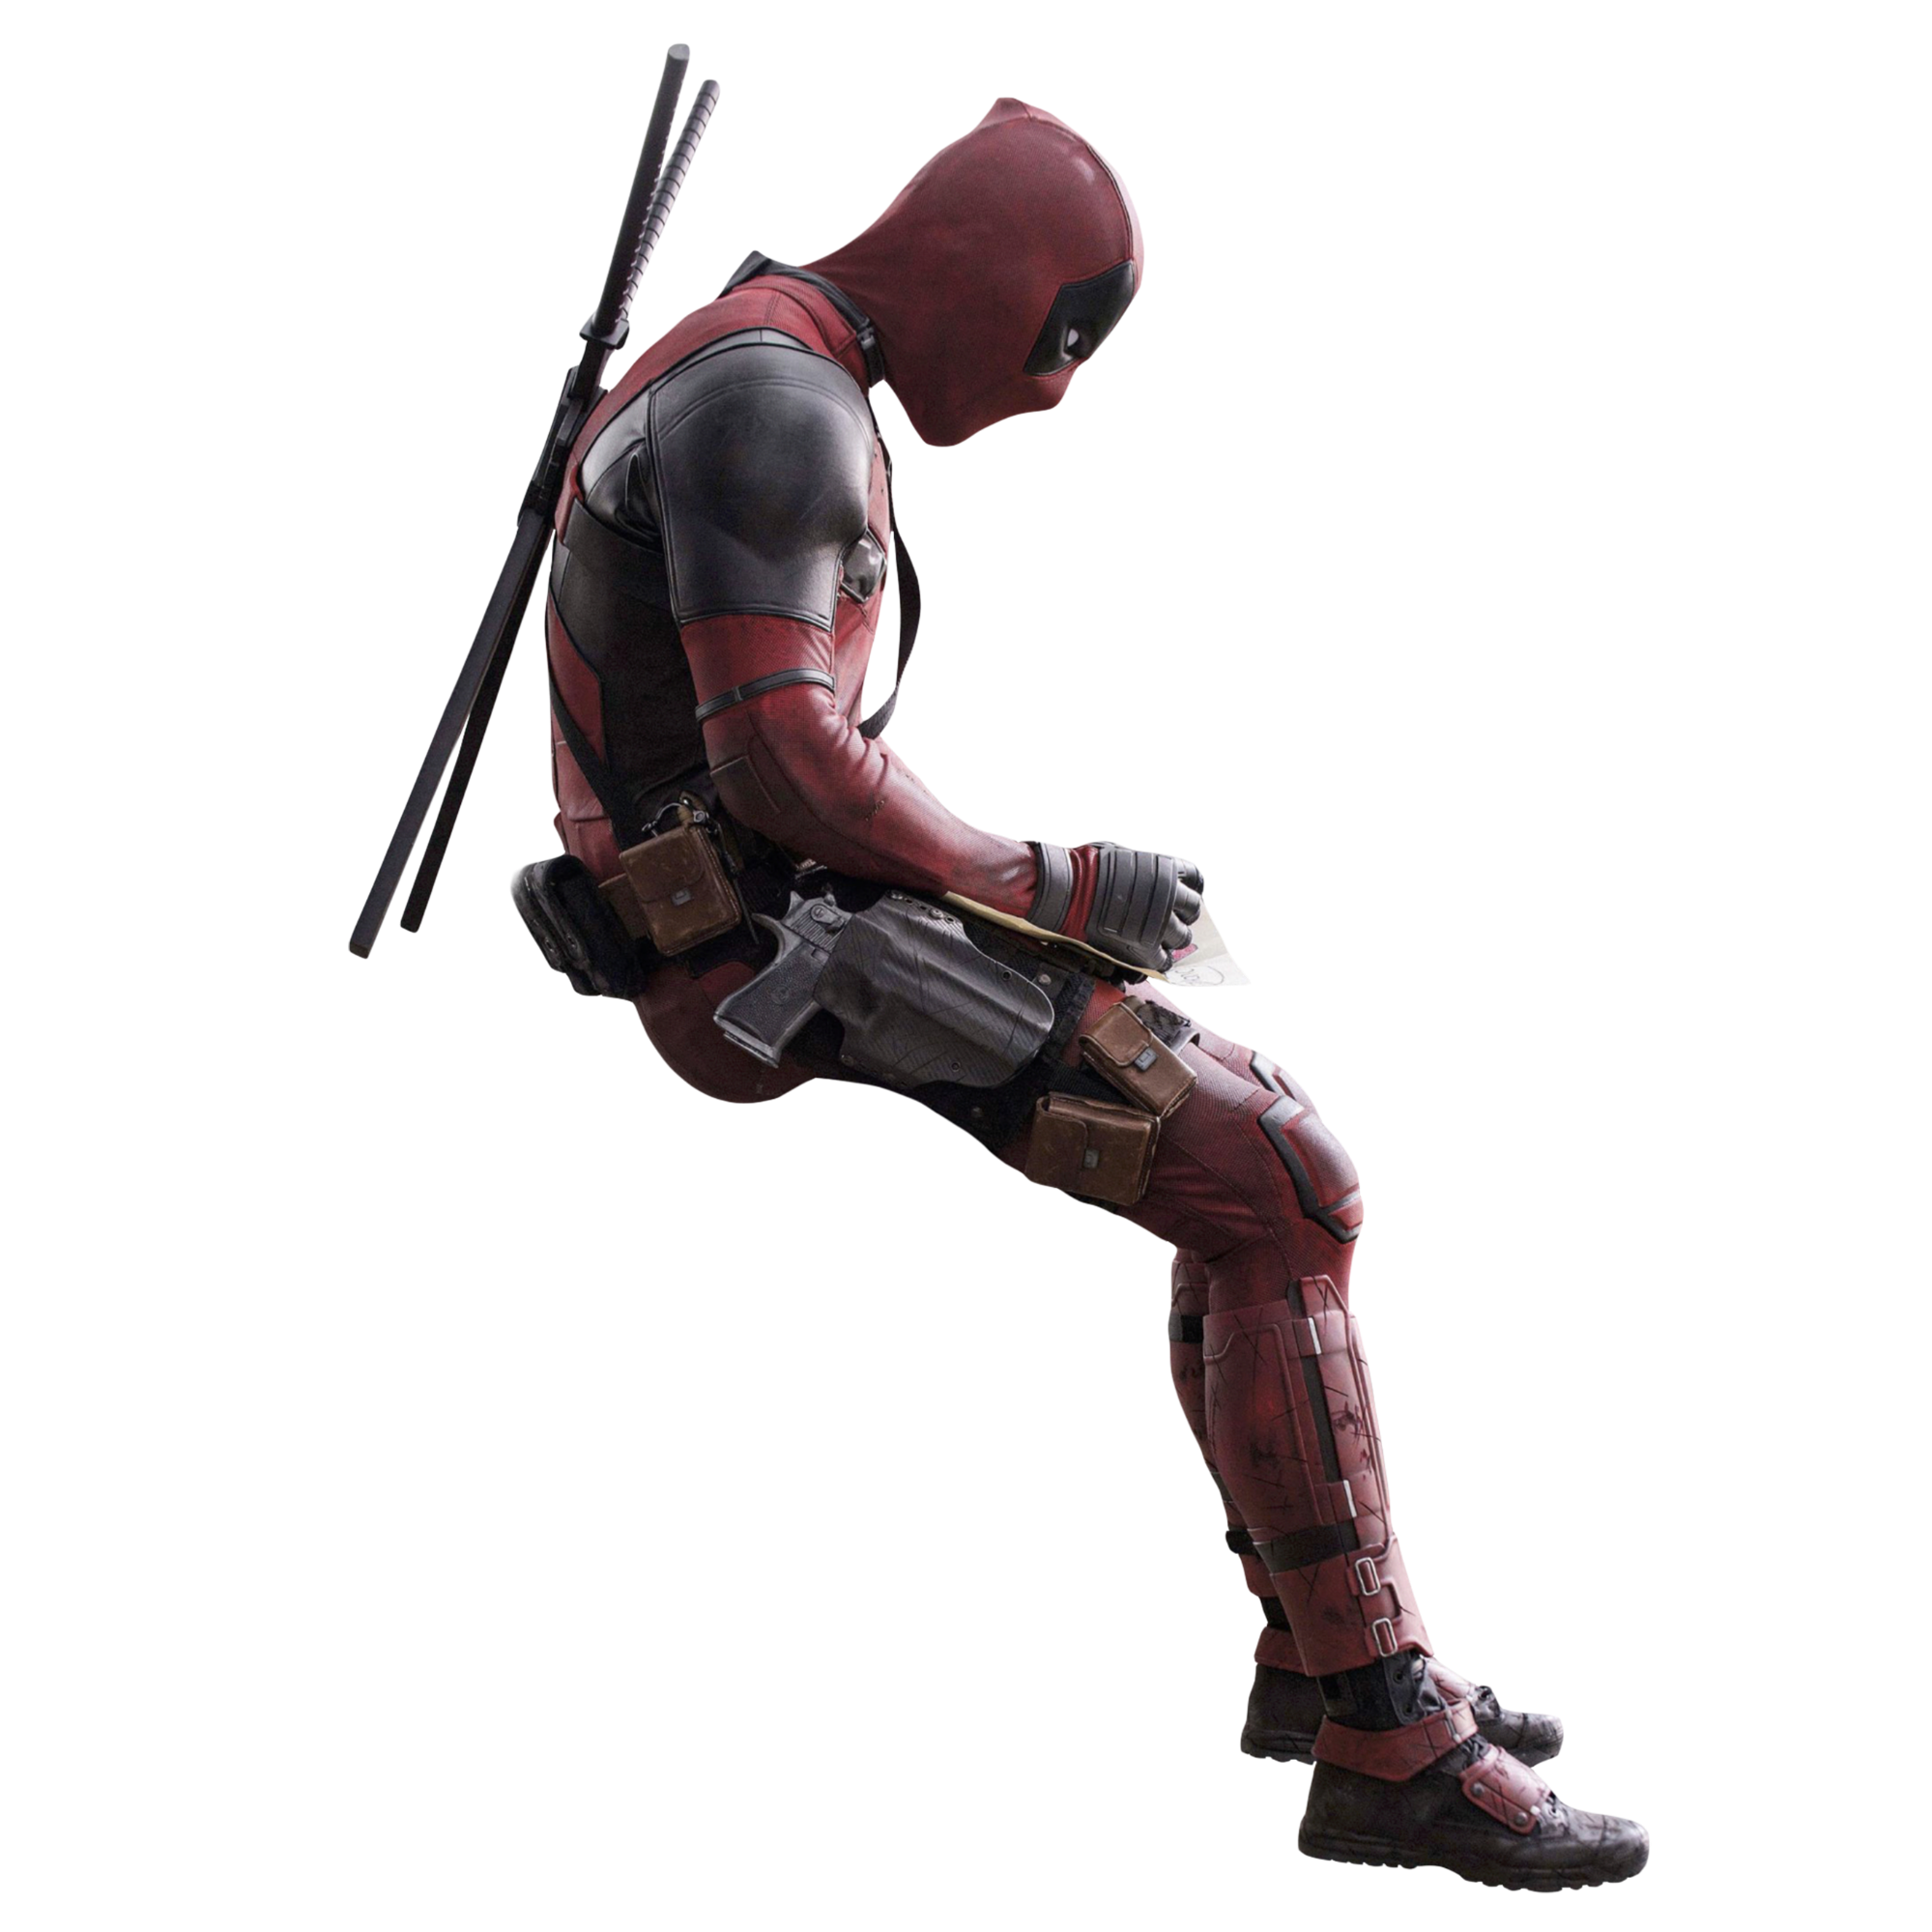 png 1999x1999 Deadpool no background - Deadpool PNG